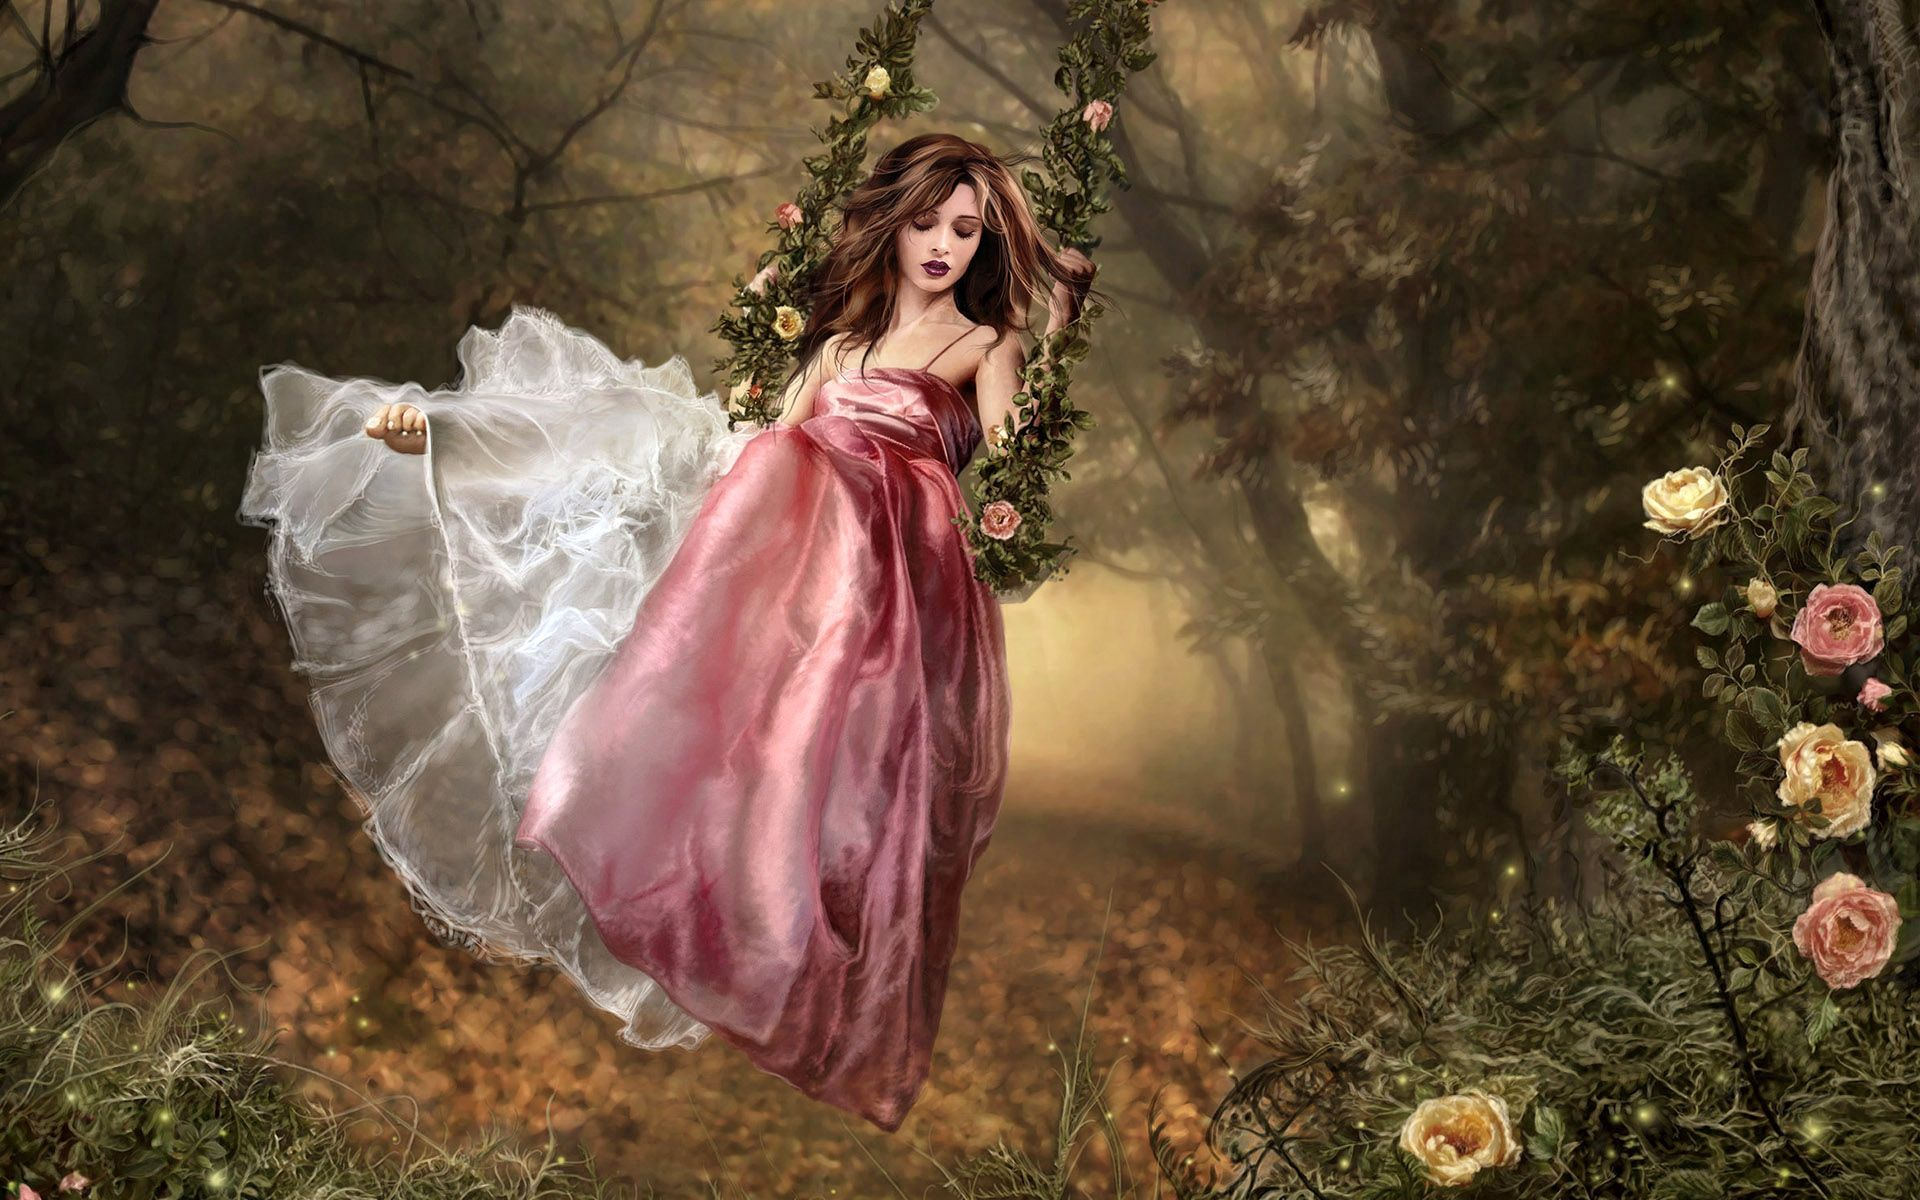 53527 Screensavers and Wallpapers Brunette for phone. Download Fantasy, Girl, Garden, Swing, Dress, Brunette pictures for free